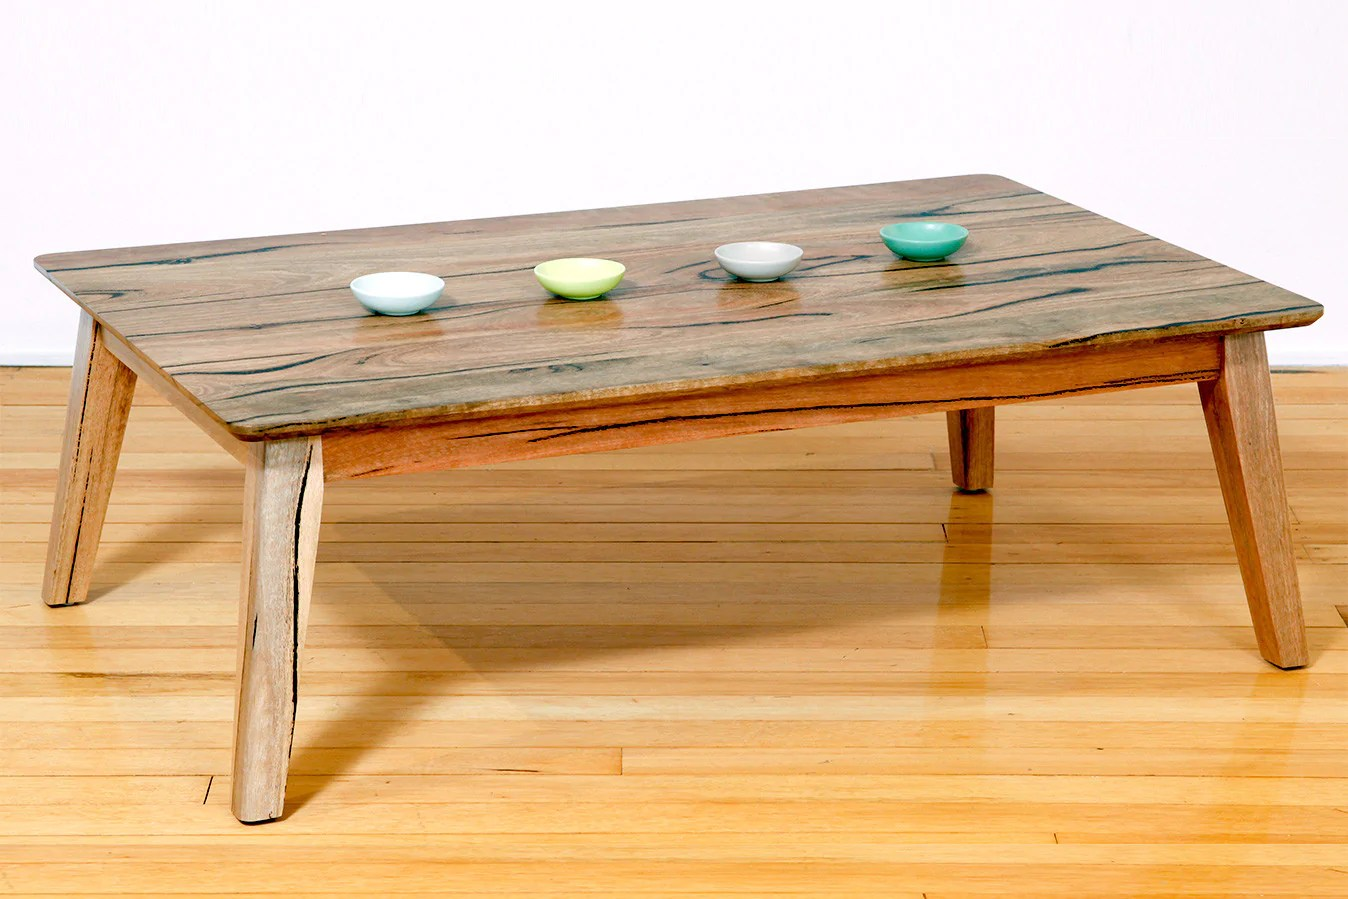 Solid Timber Coffee Table Oslo Natural Marri Solid Timber Coffee Table Bespoke Furniture